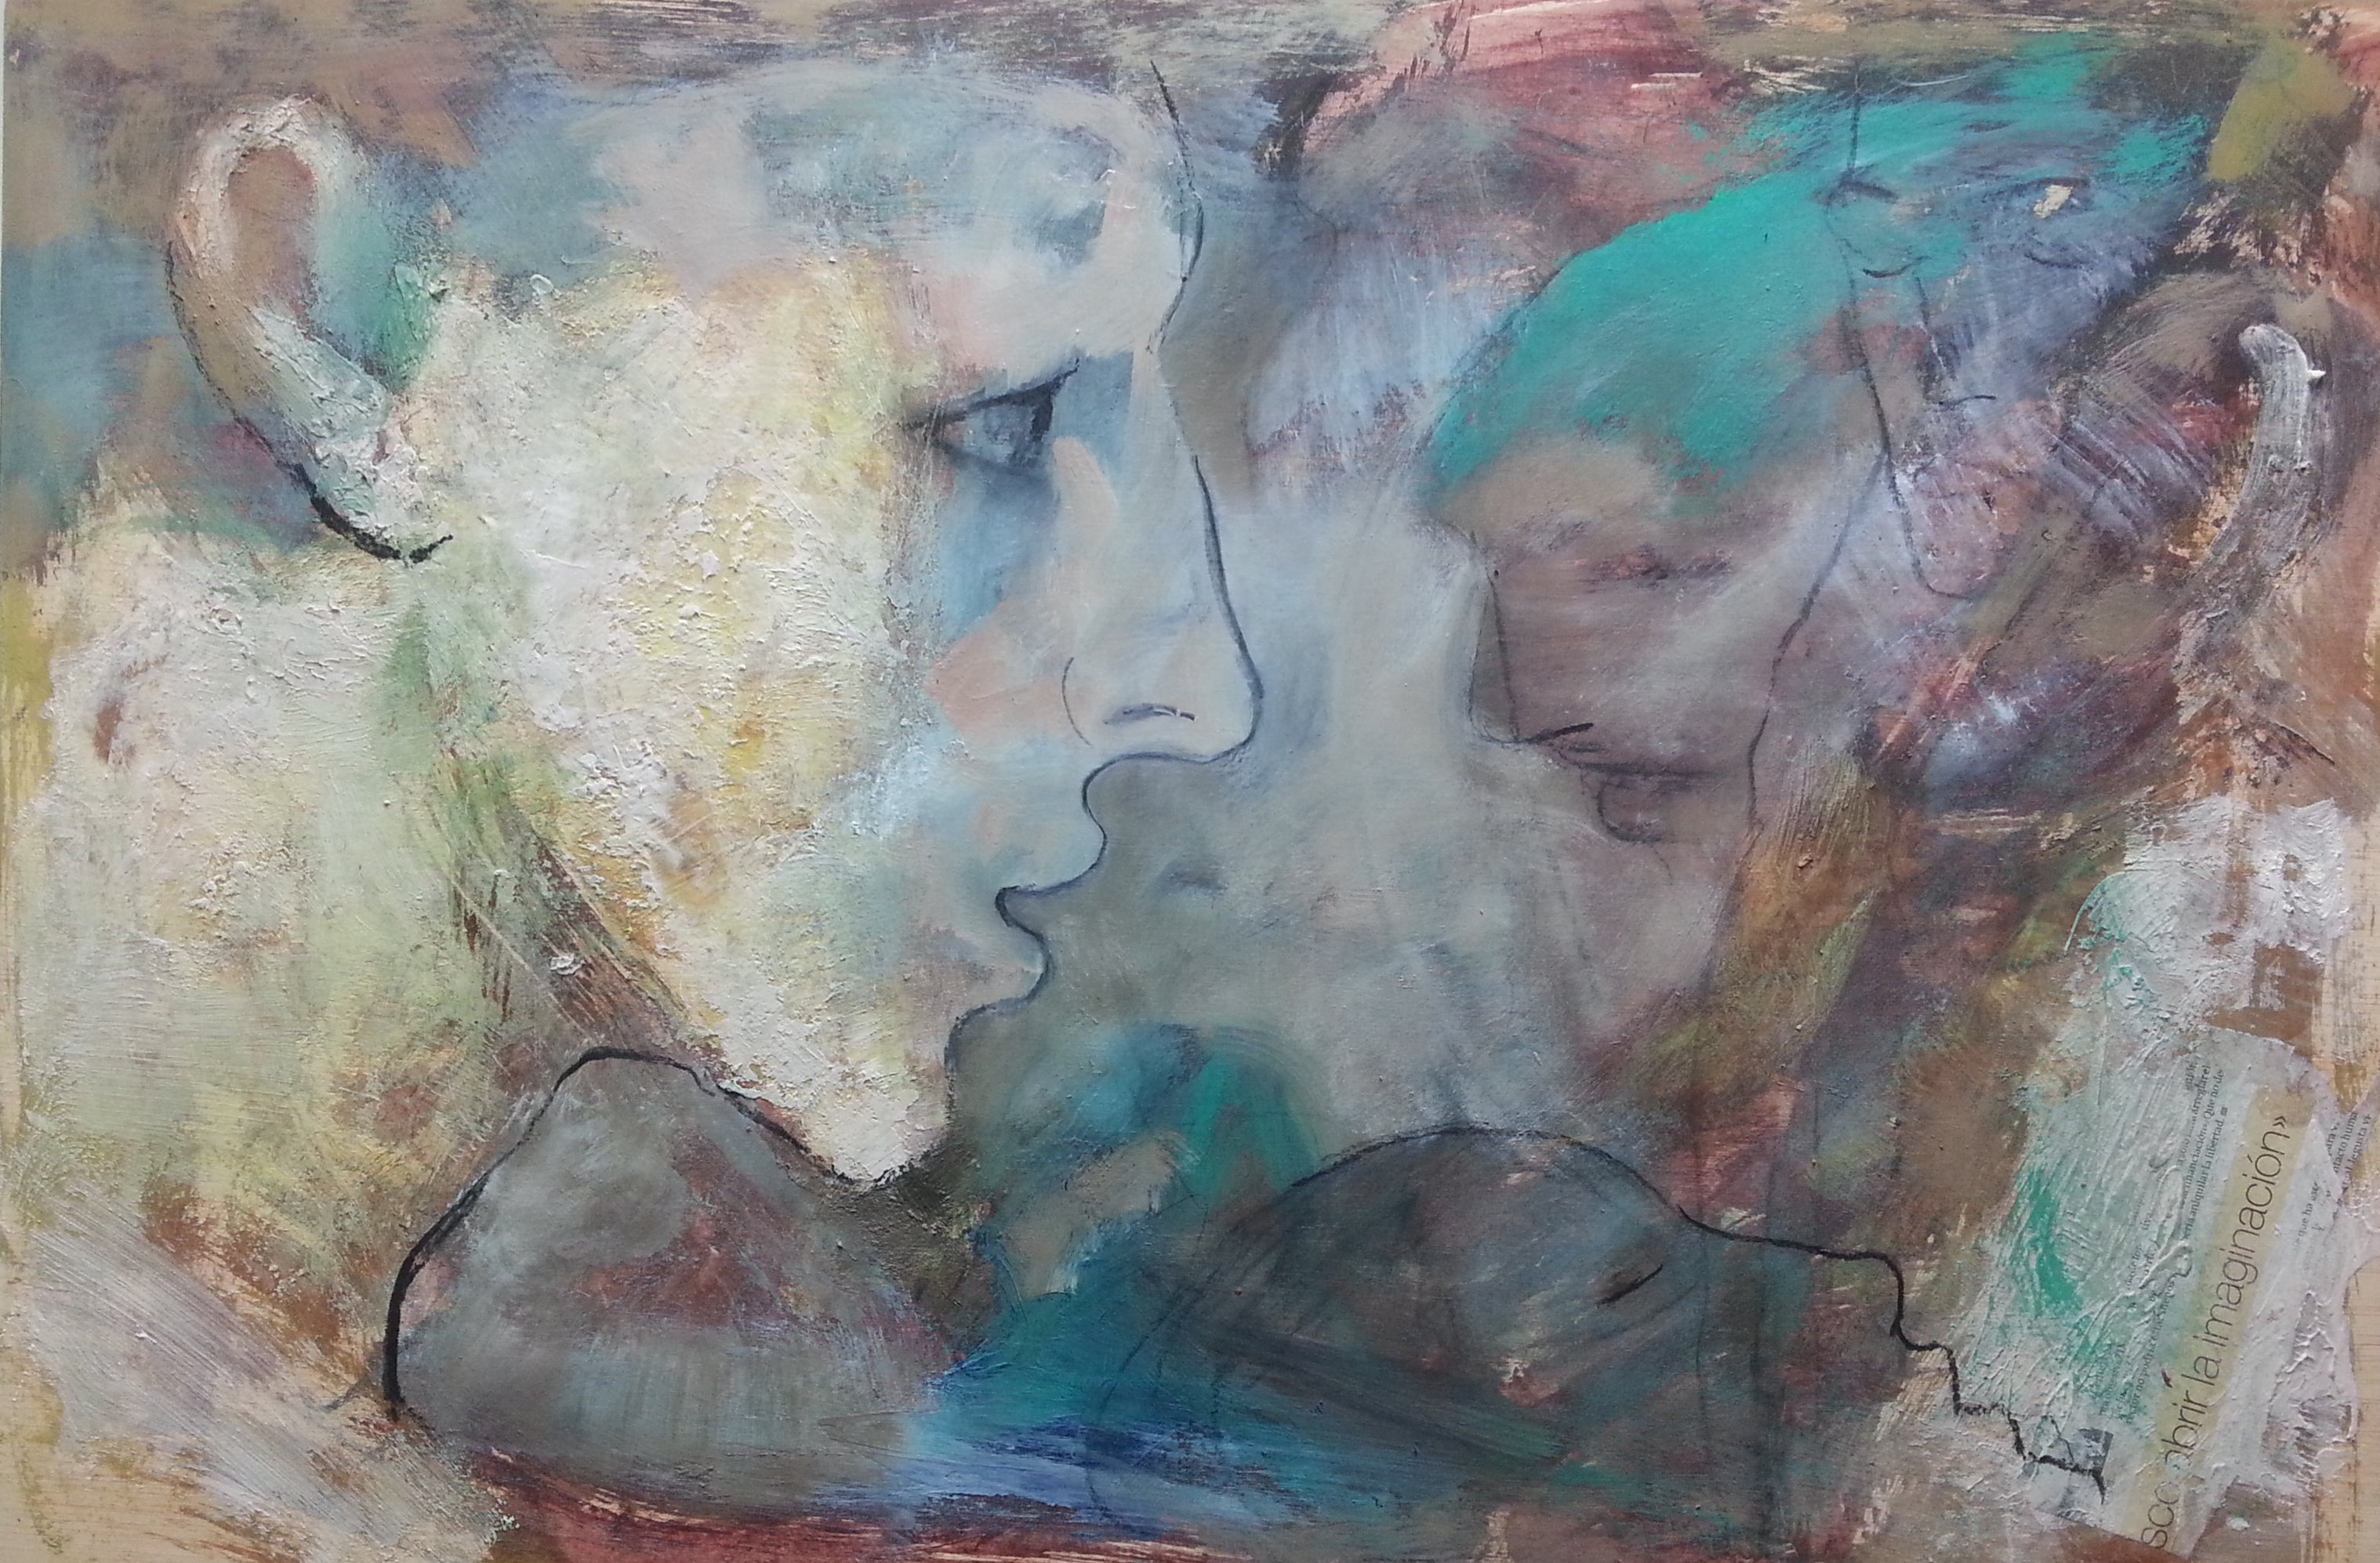 1B-15 - 21st Century, Contemporary, Figurative Painting, Oil on Wood Panel